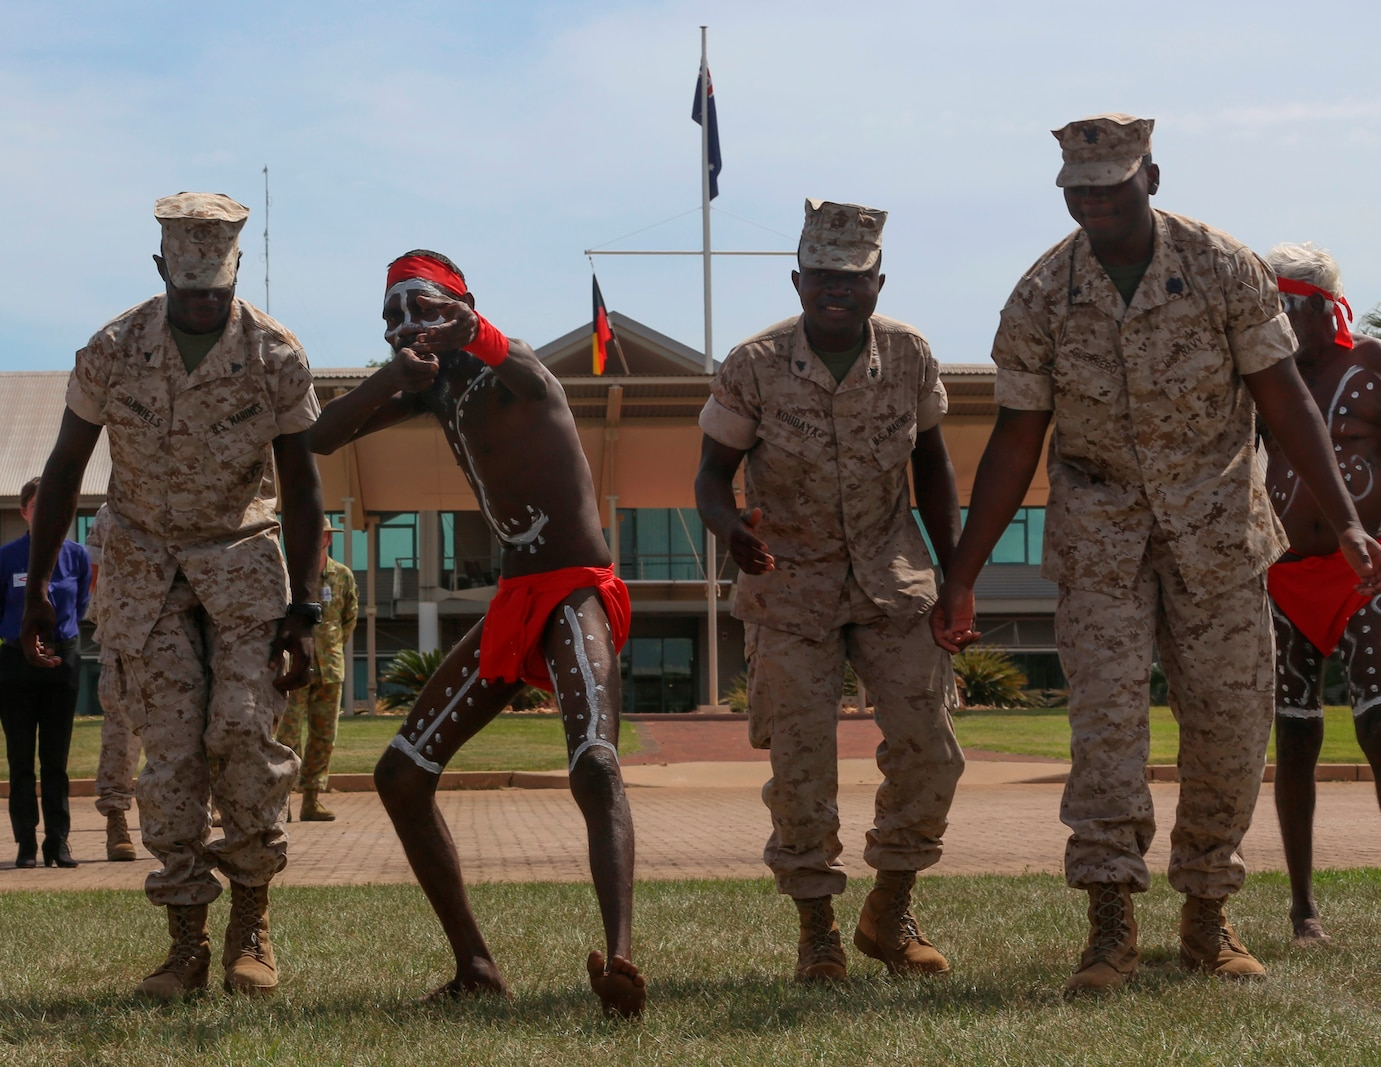 "U.S. Marines with Marine Rotational Force – Darwin dance with aboriginals during a ""Welcome to Country"" ceremony April 22 at Robertson Barracks, Palmerston, Australia. Brigadier Mick Ryan, commander, 1st Brigade, Australian Army, Australian Defence Force, spoke about the relationship between the Marines and Australians during the MRF-D deployment, and introduced Marines to aboriginal culture by inviting the Kenbi Dancers to conduct a welcoming performance. MRF-D is the deployment of U.S. Marines to Darwin and the Northern Territory, for approximately six months at a time, where they will conduct exercises and training on a rotational basis with the ADF. (U.S. Marine Corps photo by Lance Cpl. Kathryn Howard/Released)"